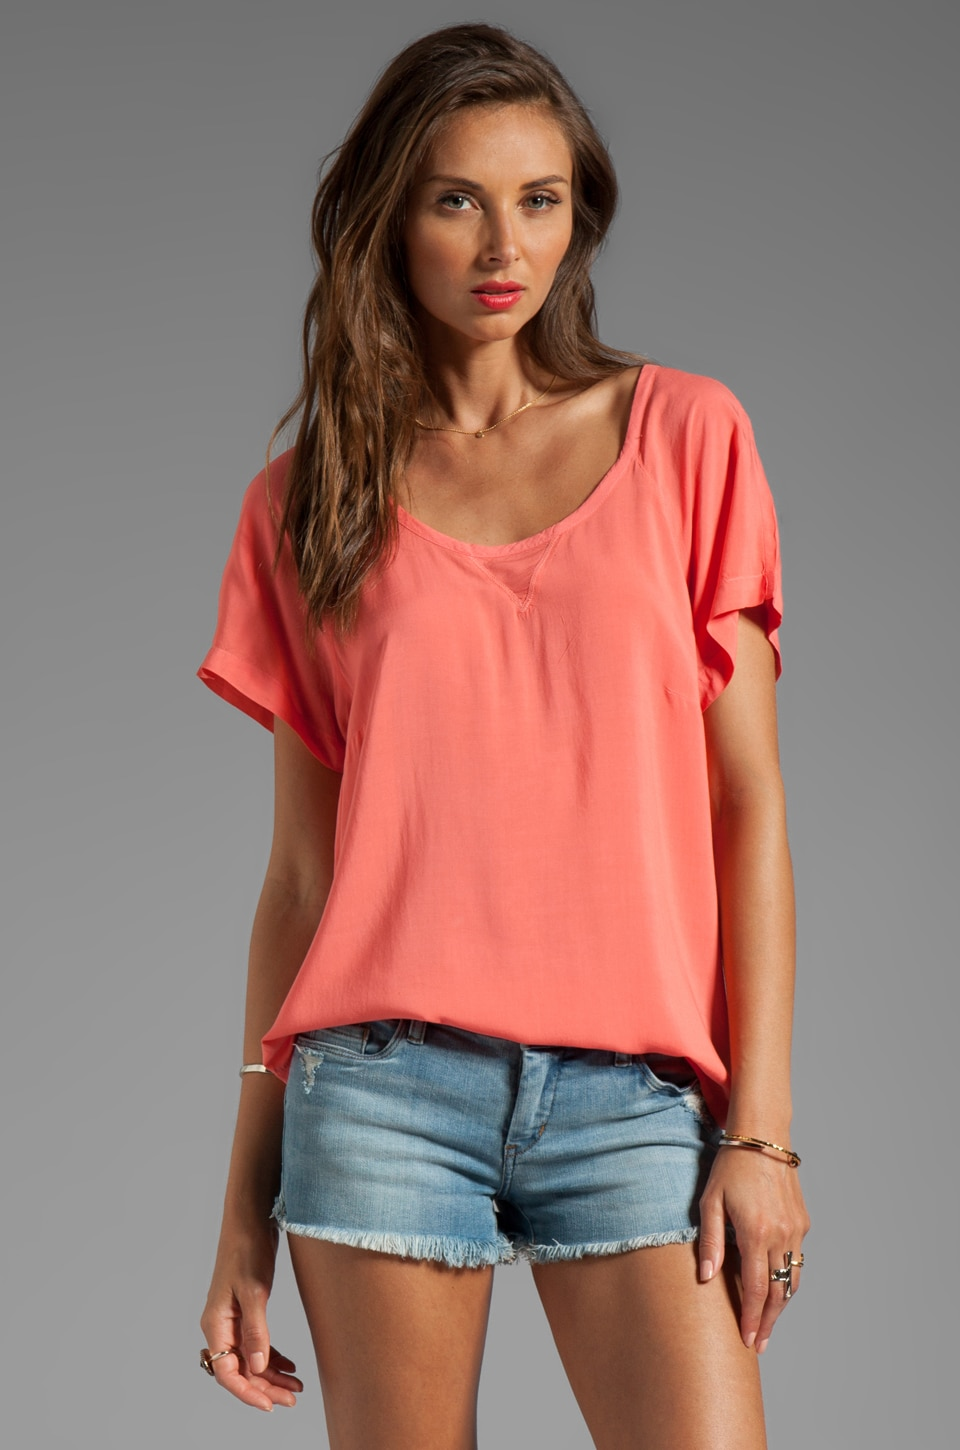 Splendid Shirting Short Sleeve Top in Hot Coral